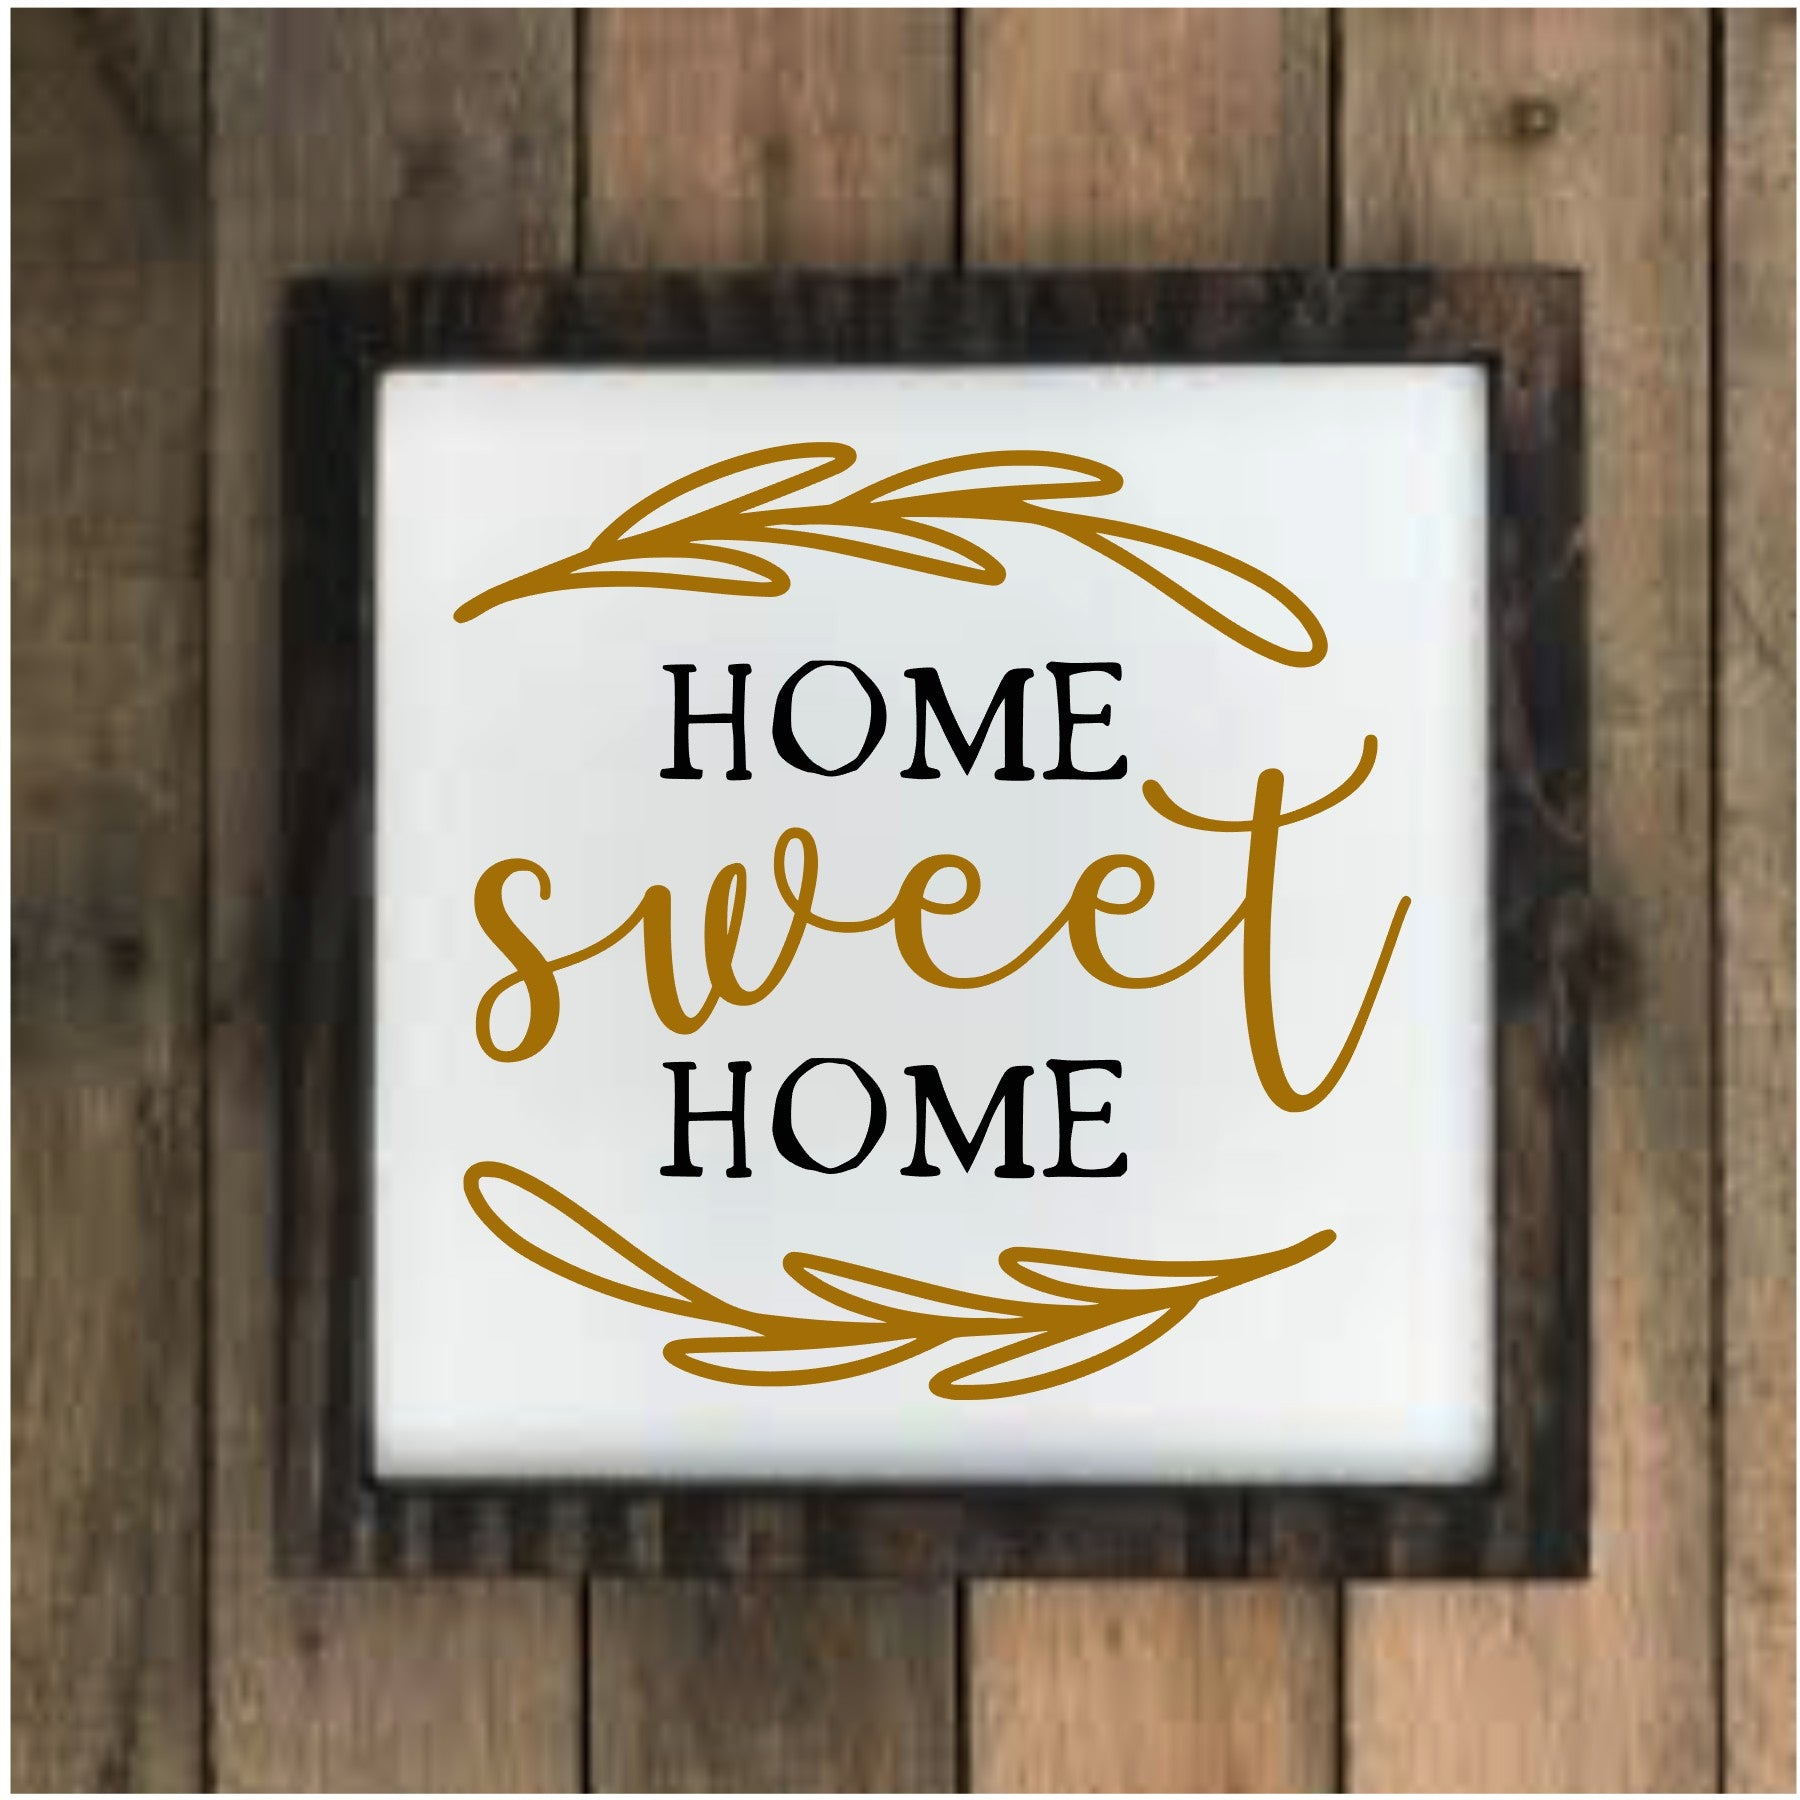 SVG Home Sweet Home SVG - JPIBlanks.com